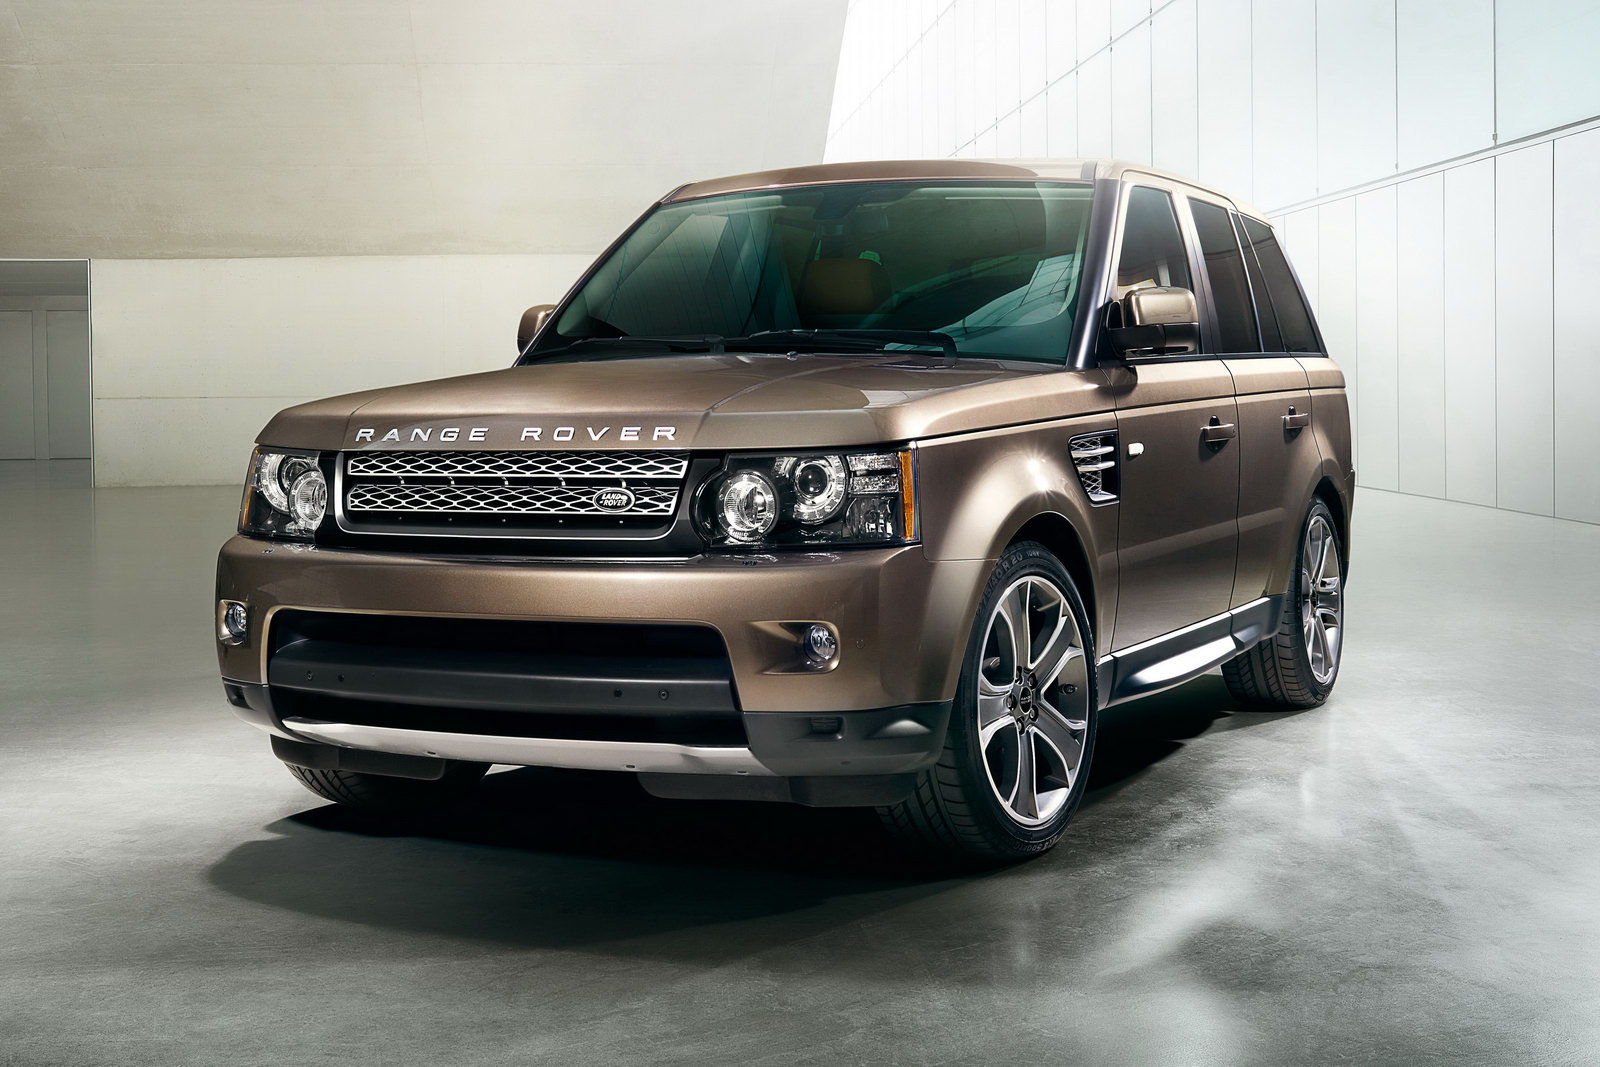 RR Sport 2012 1 New 8 speed auto and diesel engine in 2012 Range Rover Sports commands better performance